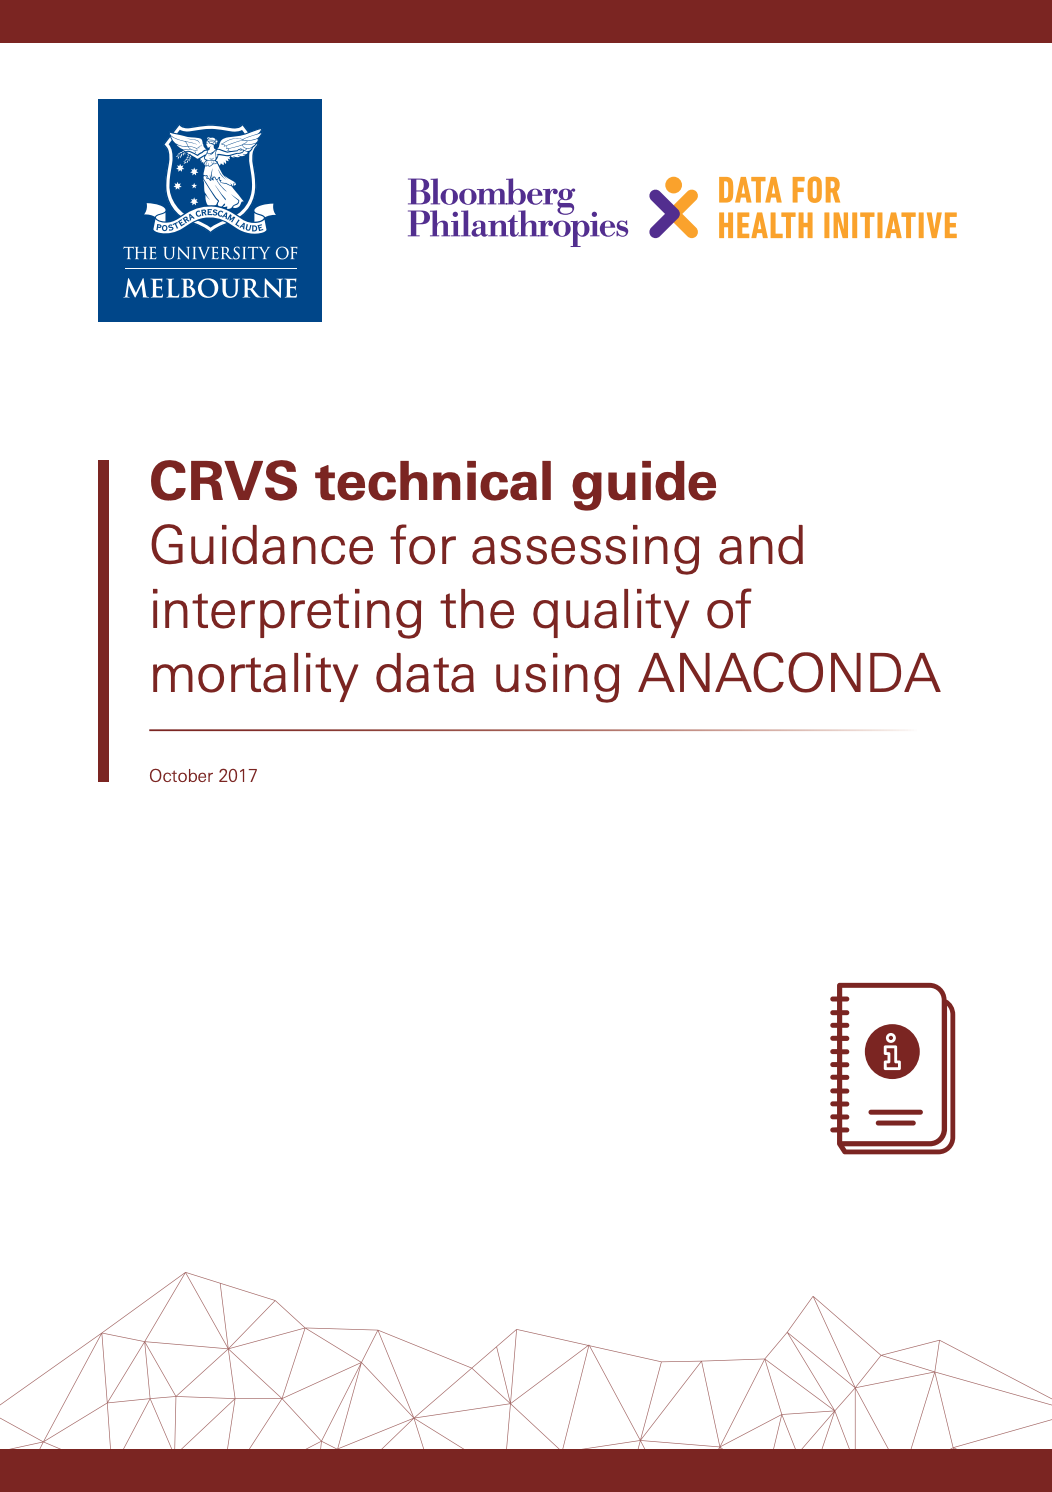 CRVS technical guide - Guidance for assessing and interpreting the quality of mortality data using ANACONDA thumnbail